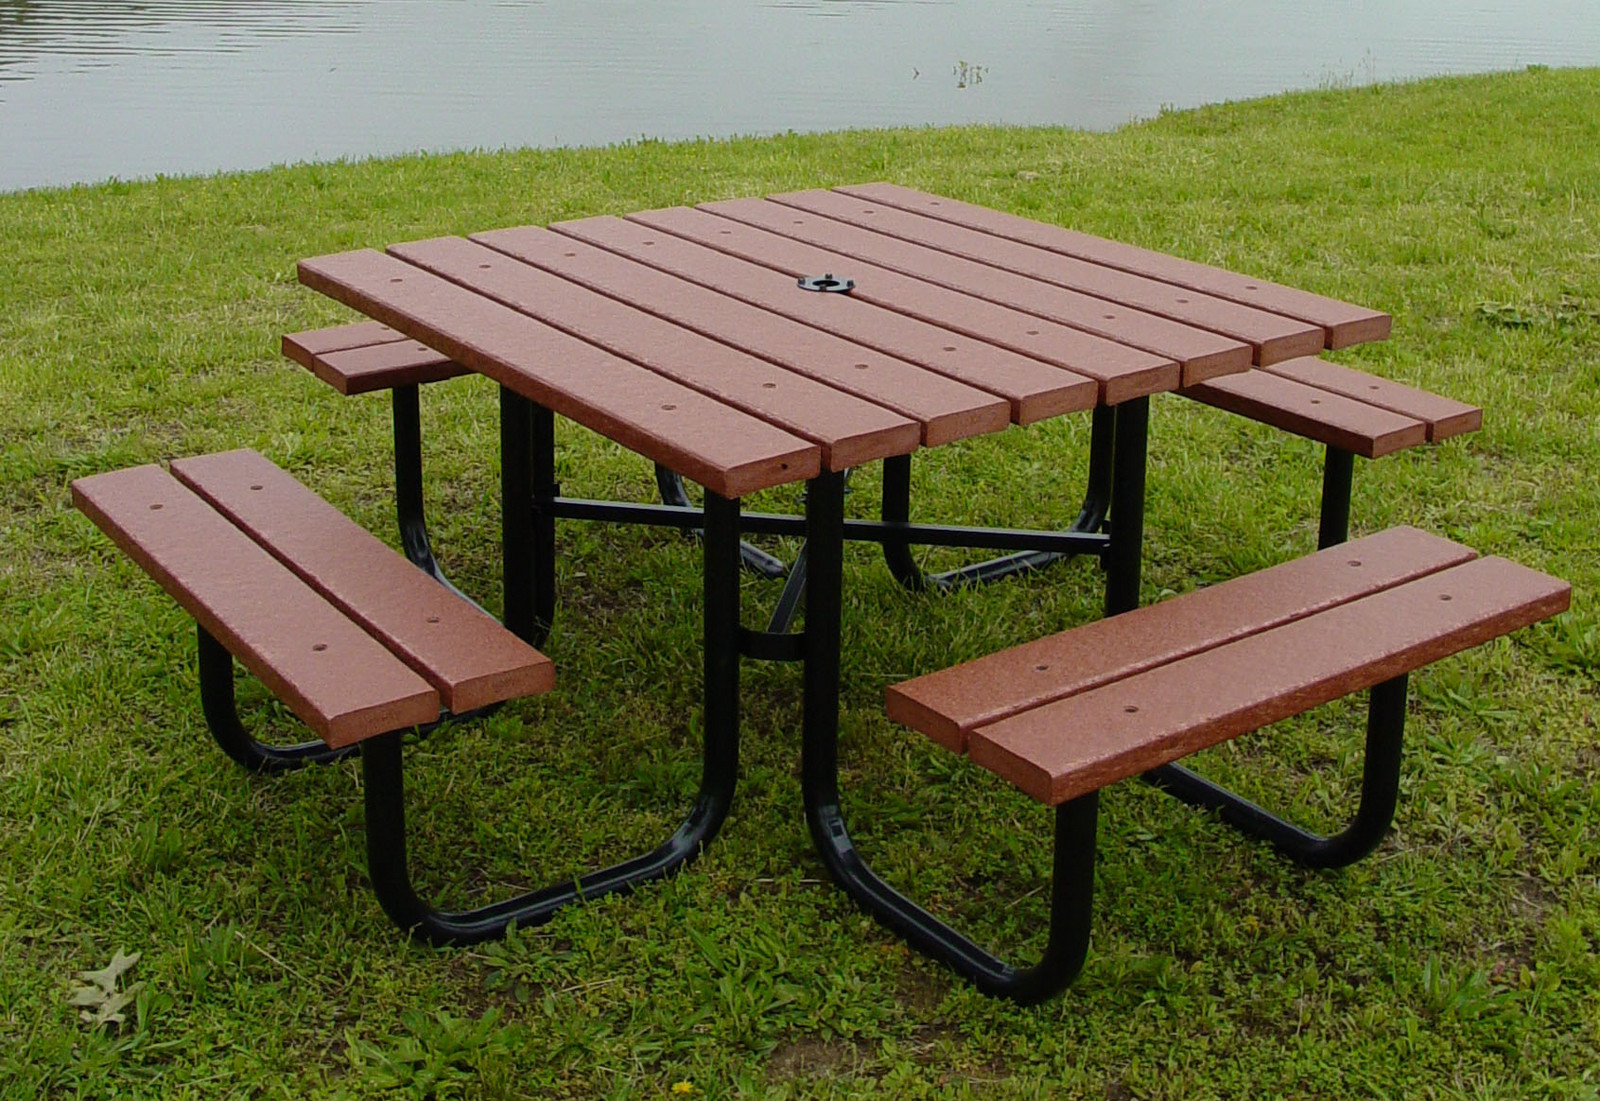 furniture outdoor furniture picnic table 4 square picnic table. Black Bedroom Furniture Sets. Home Design Ideas